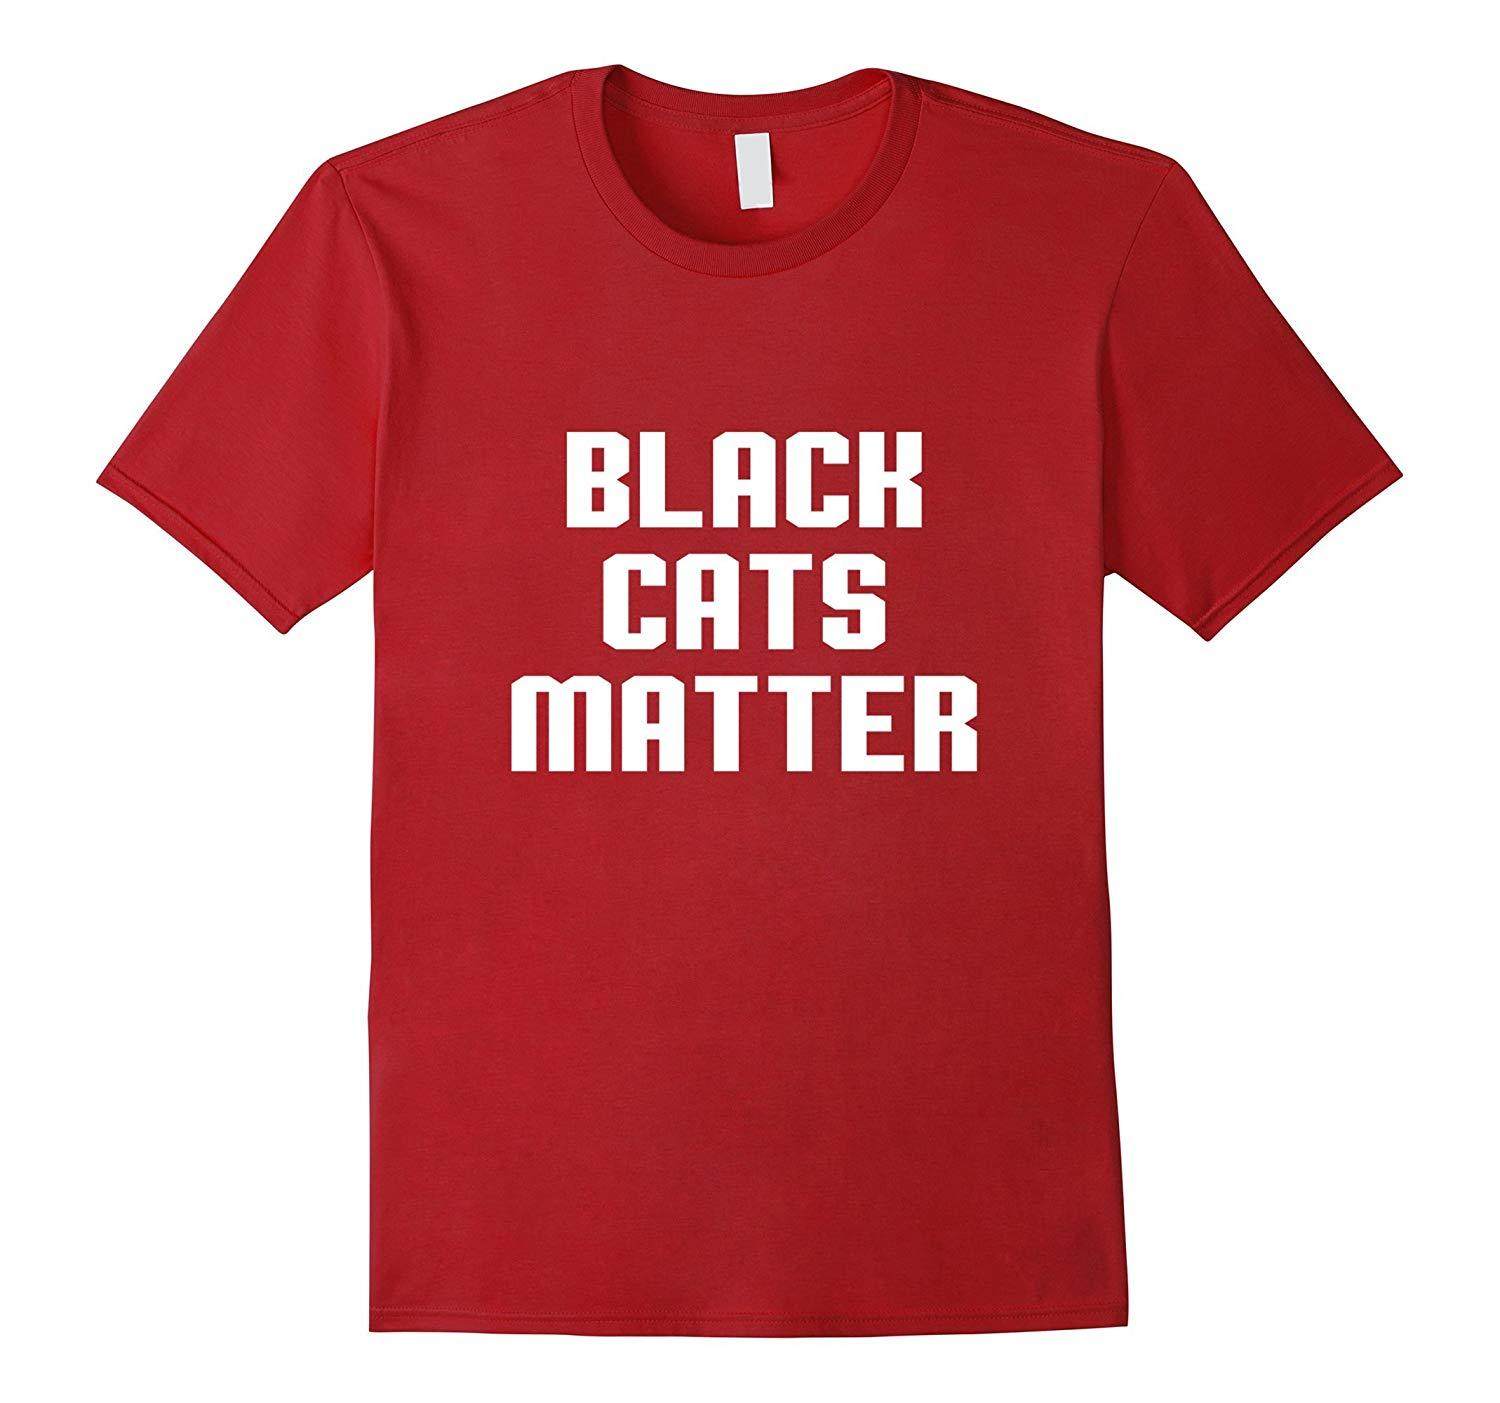 Primary image for New Shirts - Black cats matter Shirts Men